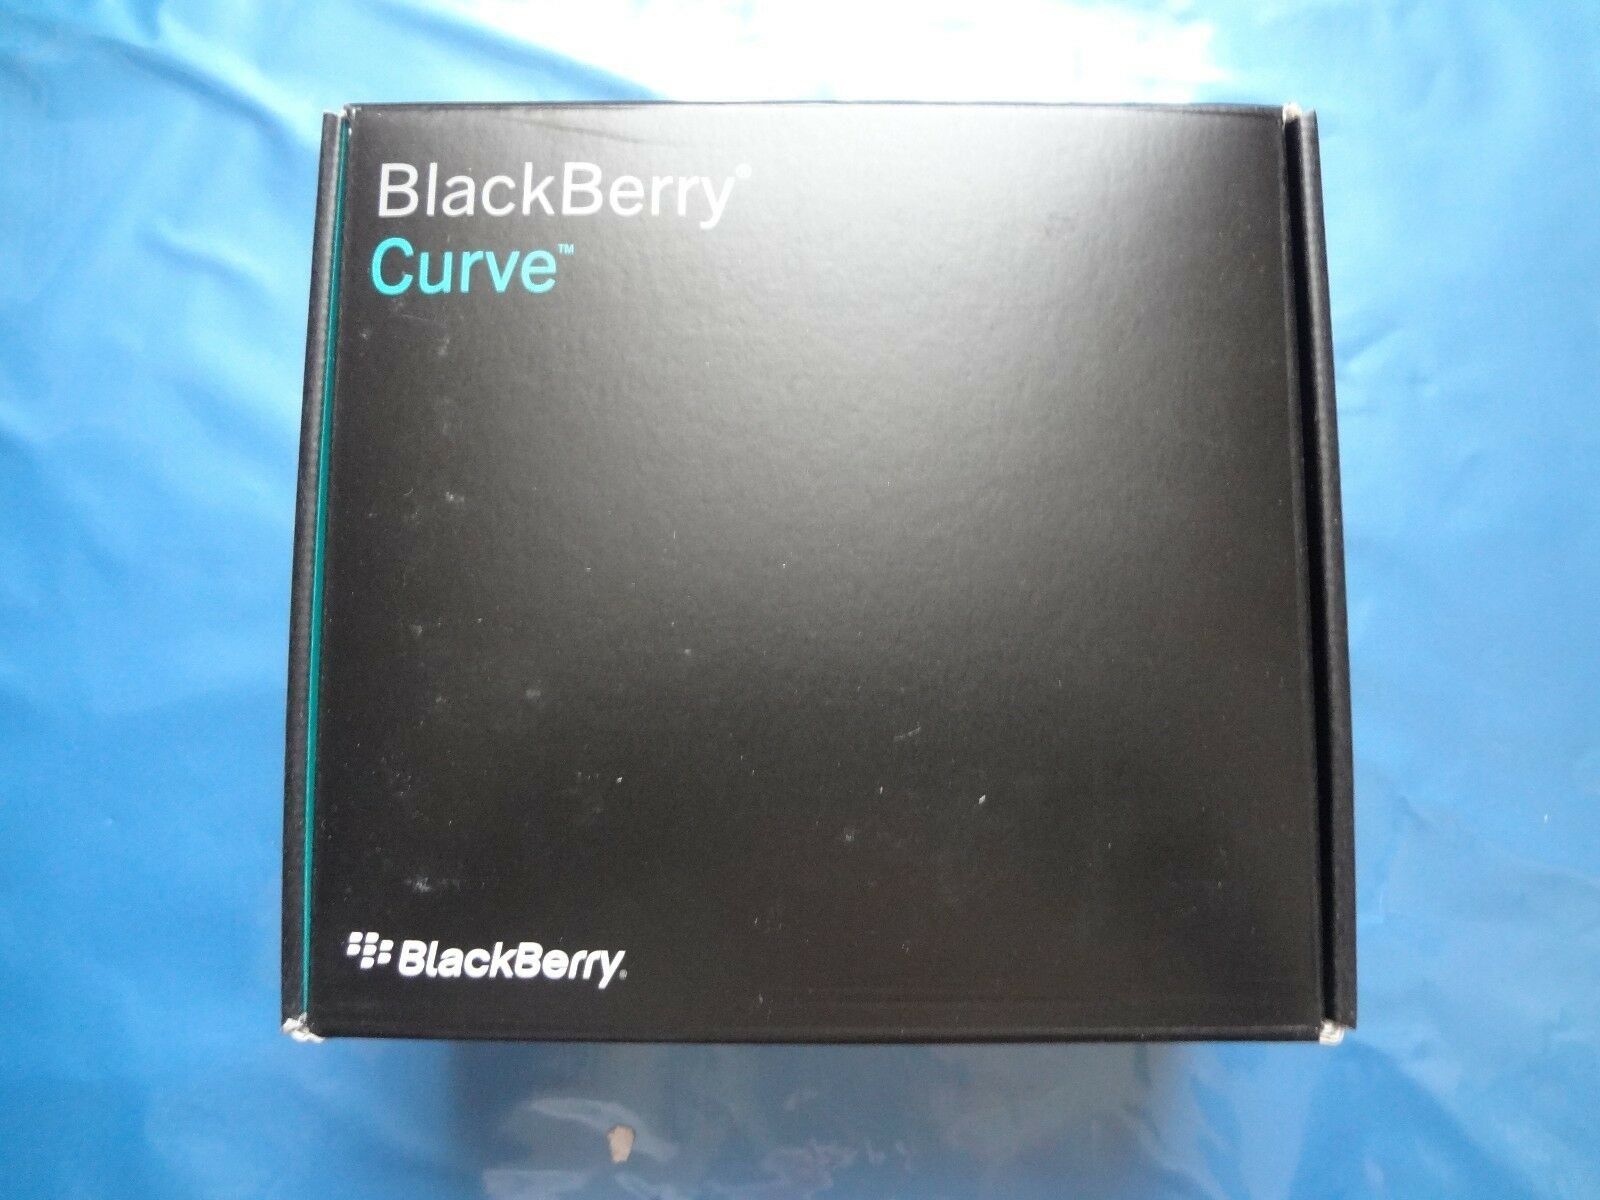 BlackBerry Curve 9320 - Black (Unlocked) Smartphone Factory Sealed